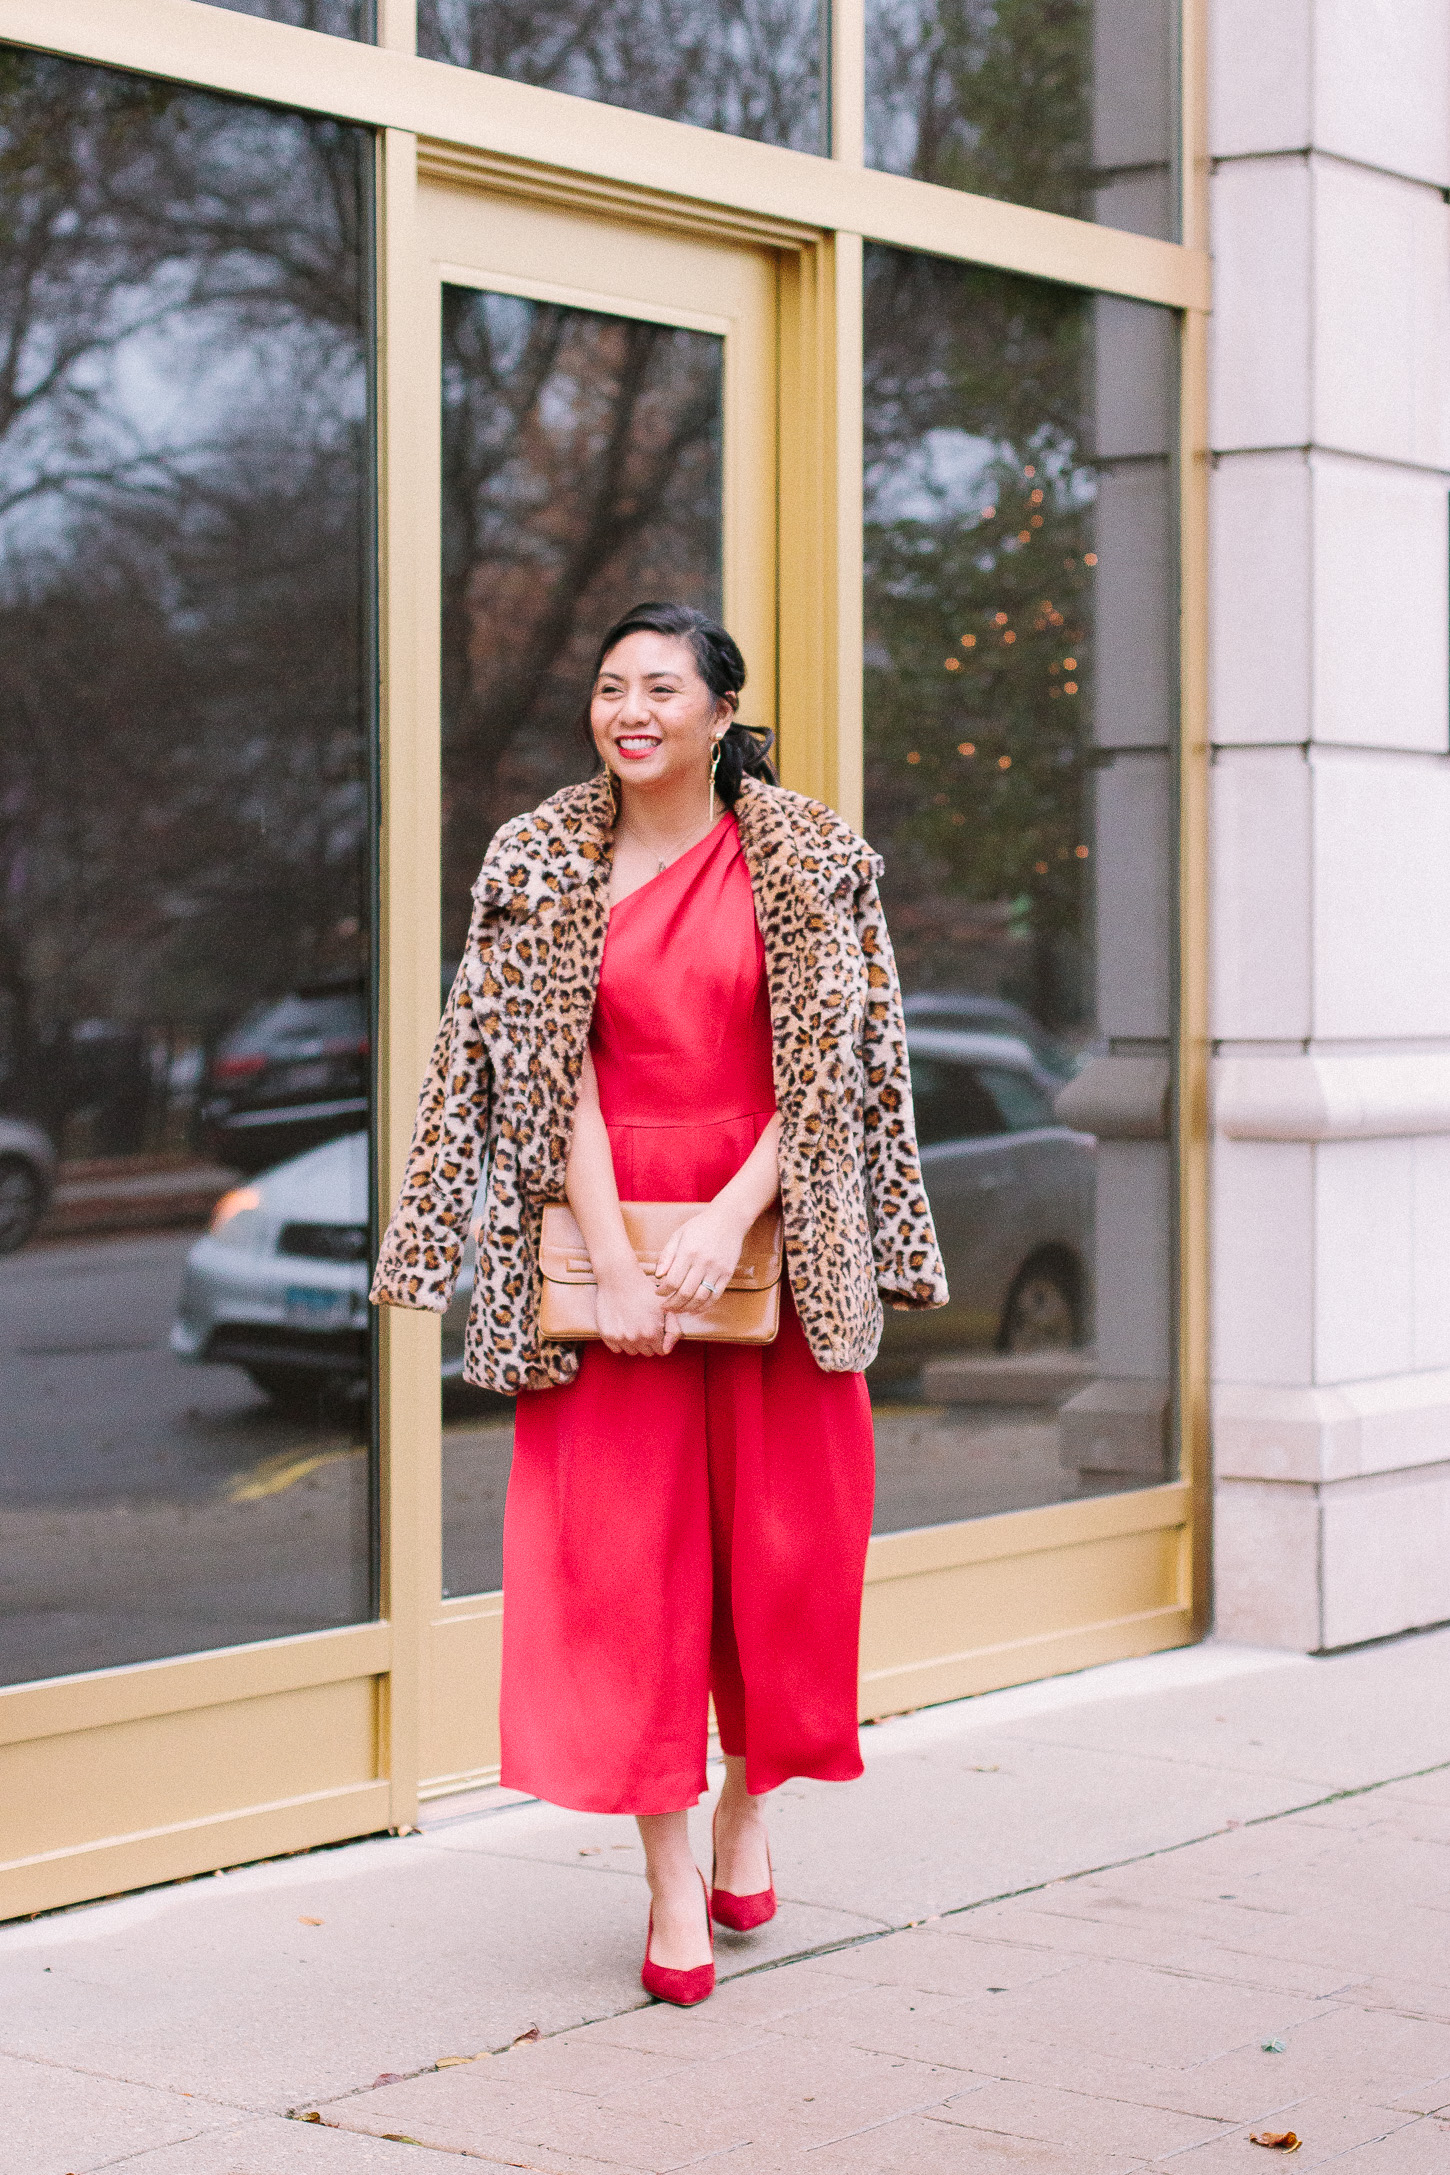 b6e54bc6899e The Best Red Jumpsuit For The Holidays - RD s Obsessions